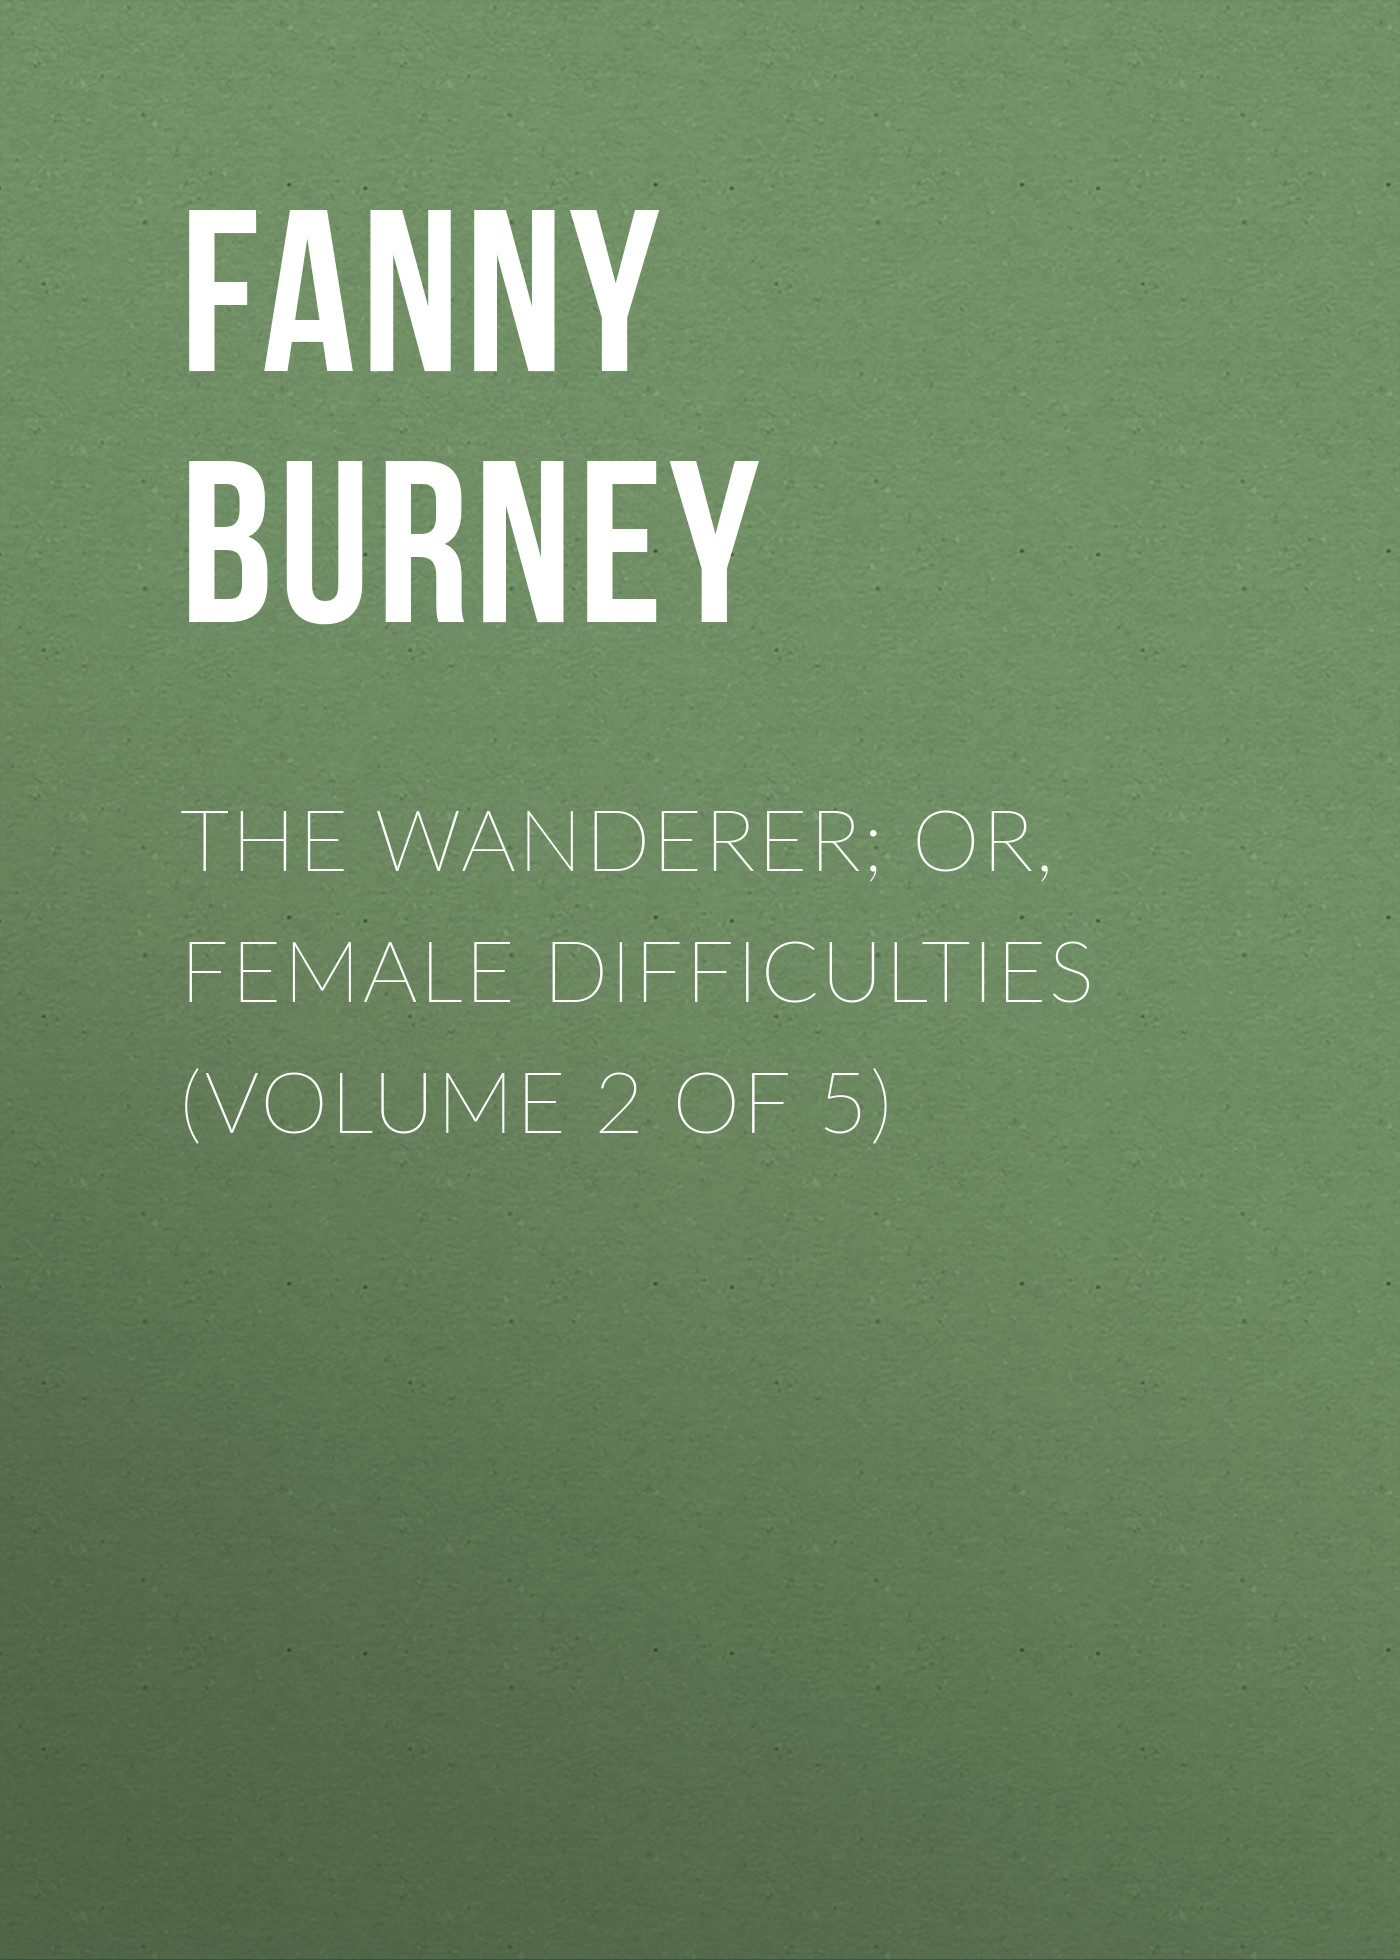 Burney Fanny The Wanderer; or, Female Difficulties (Volume 2 of 5) burney fanny the wanderer or female difficulties volume 5 of 5